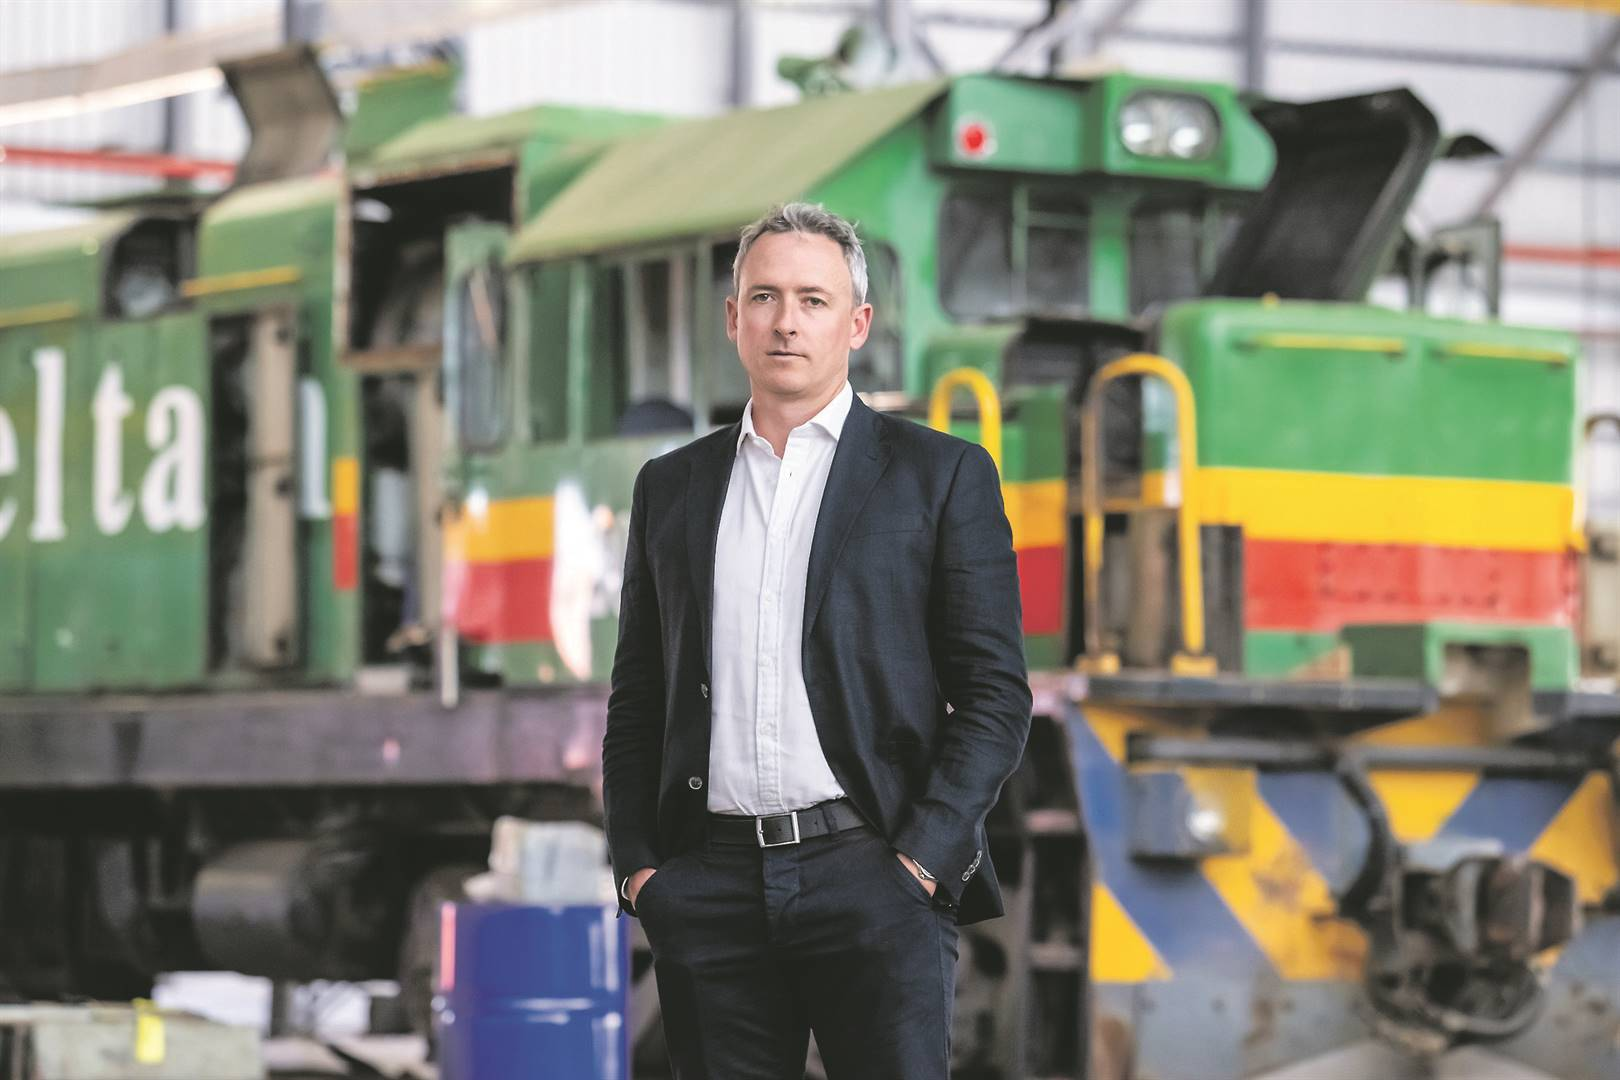 CEO of Traxtion, Africa's largest private rail operator, James Holley.